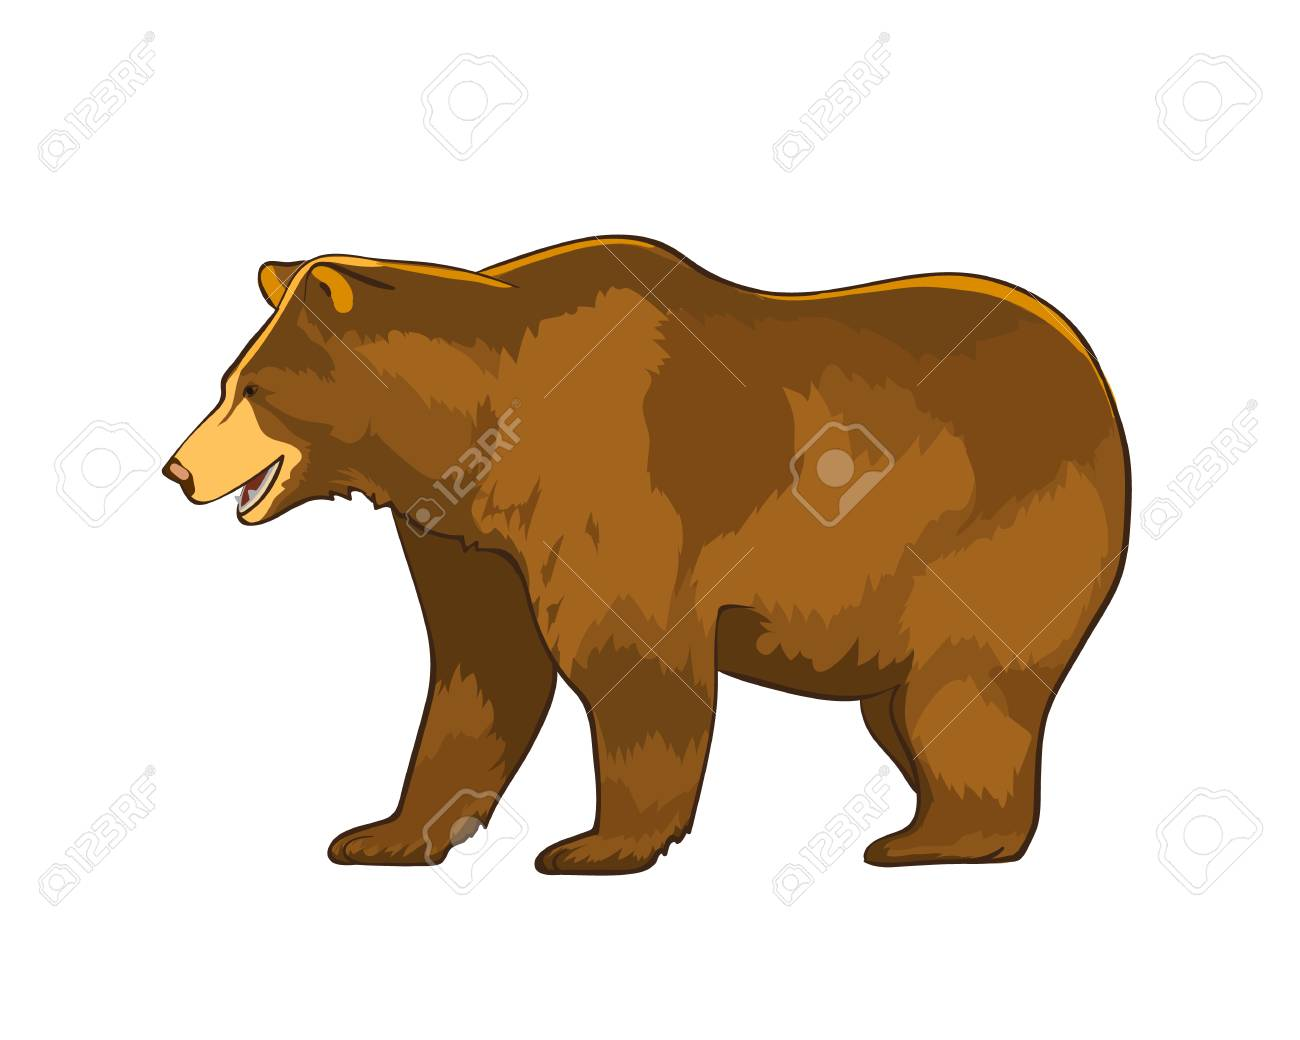 Vector illustration of bear Grizzly isolated on white background - 92934101